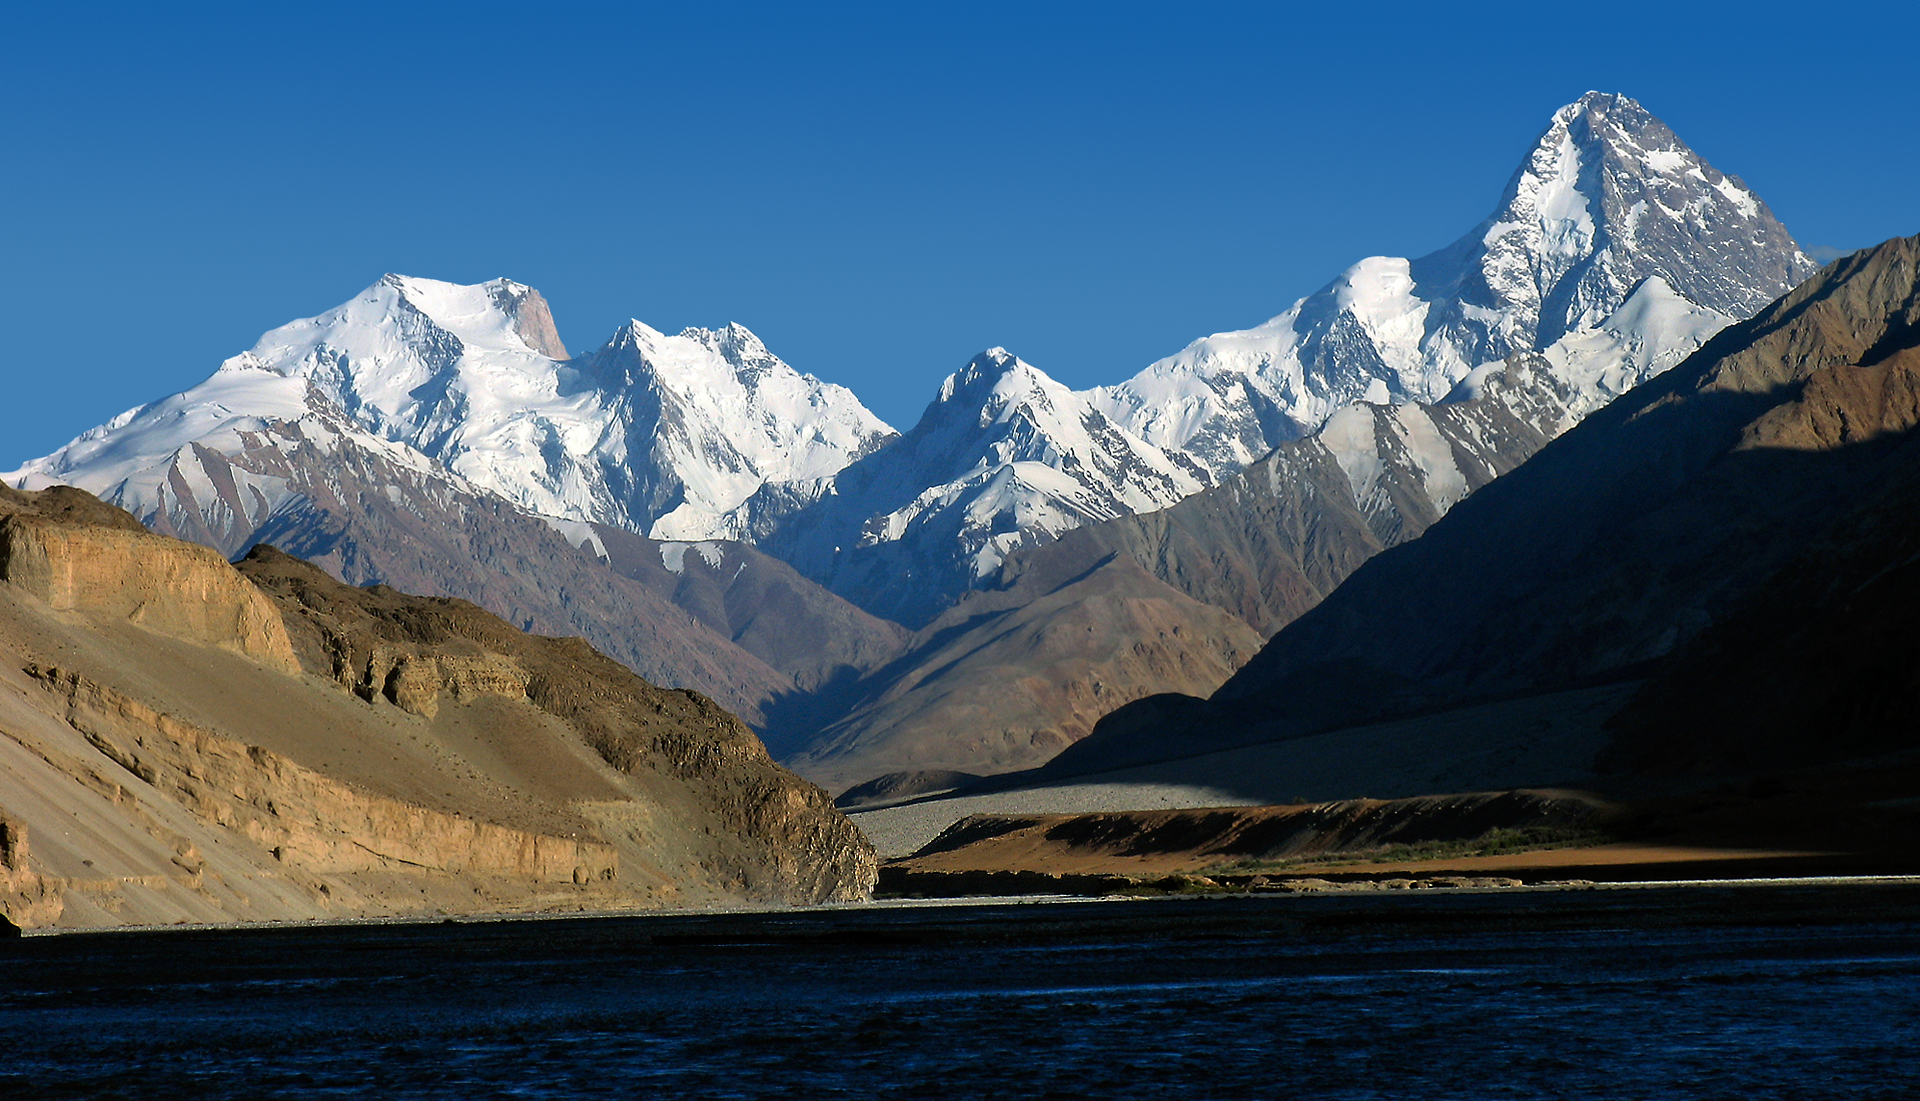 Beek K 2 Karakorum Muztagh